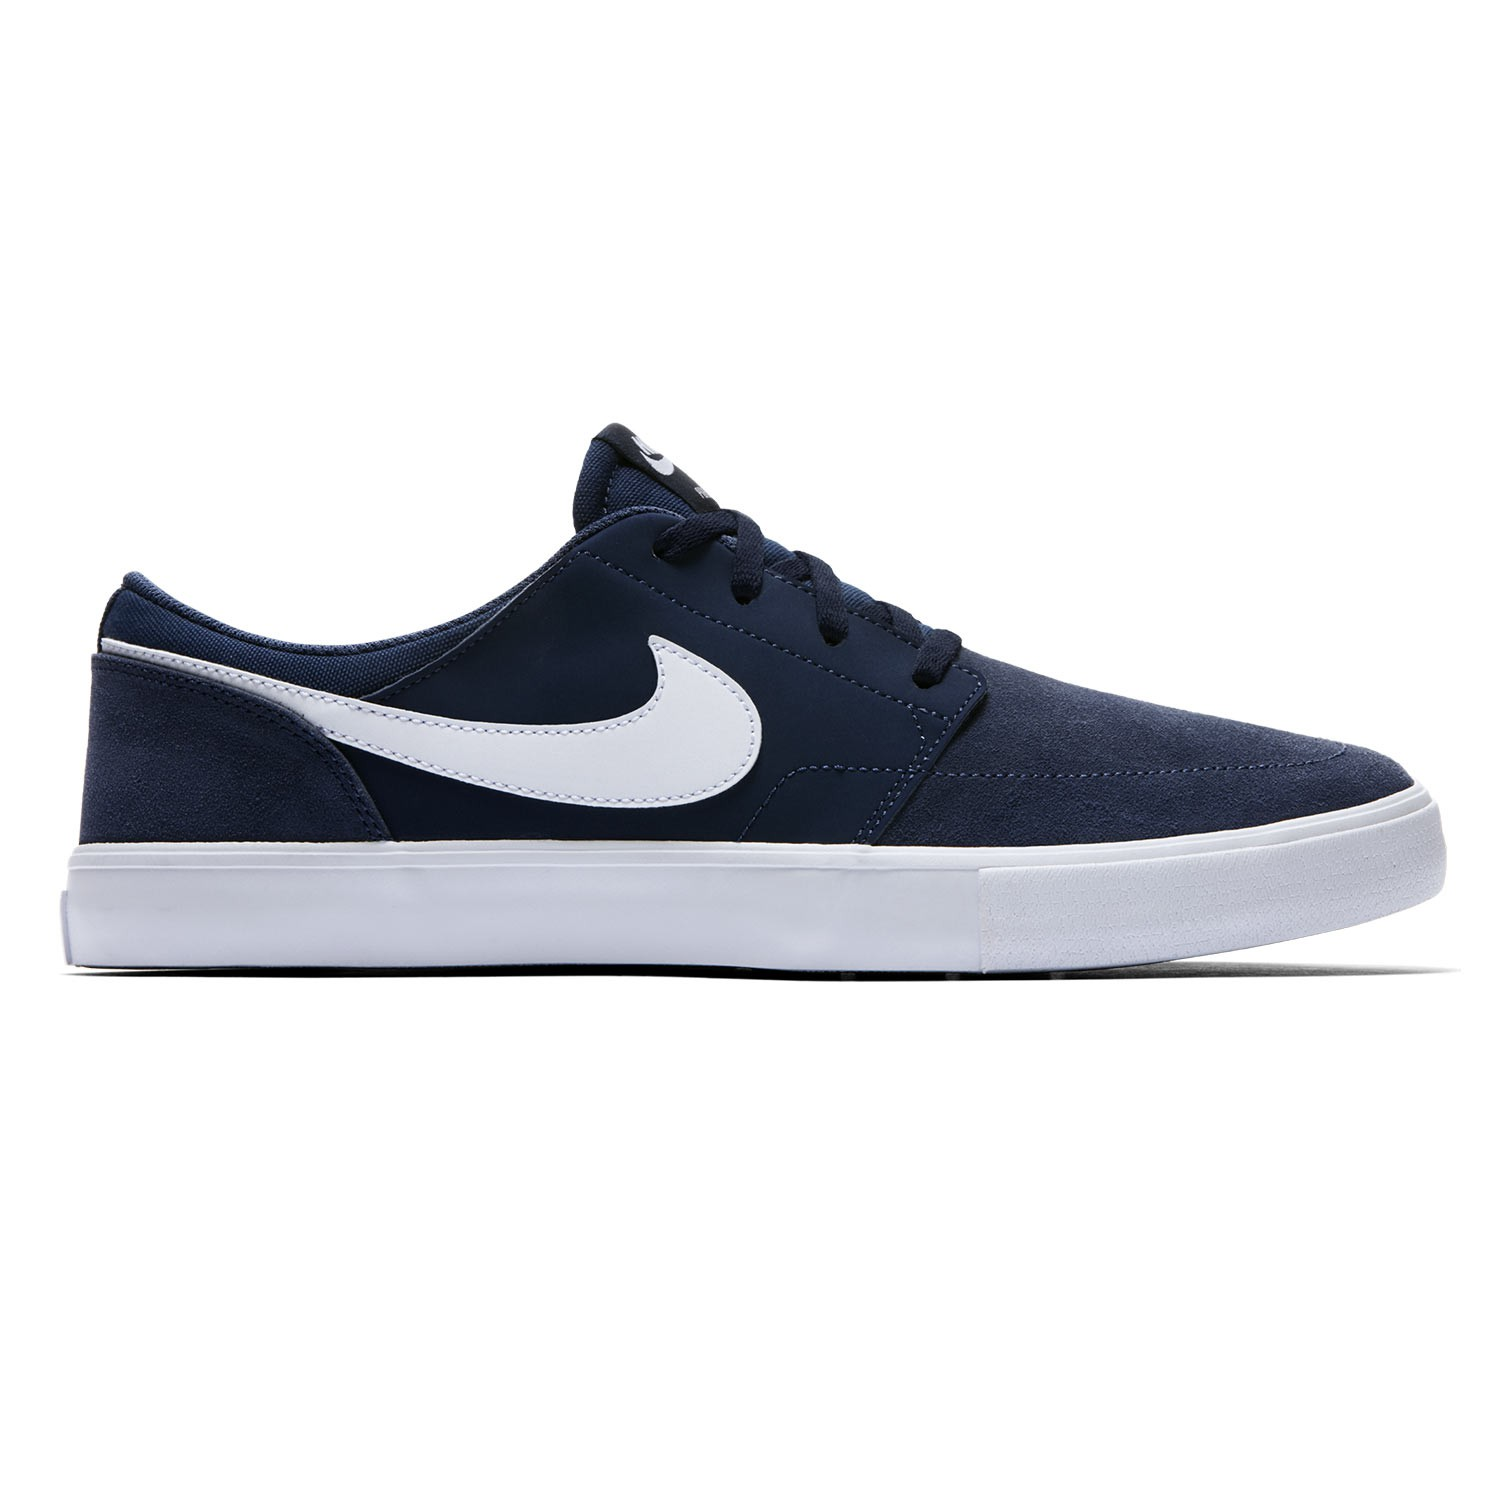 Tenisky Nike SB Solarsoft Portmore Ii midnight navy/white-black